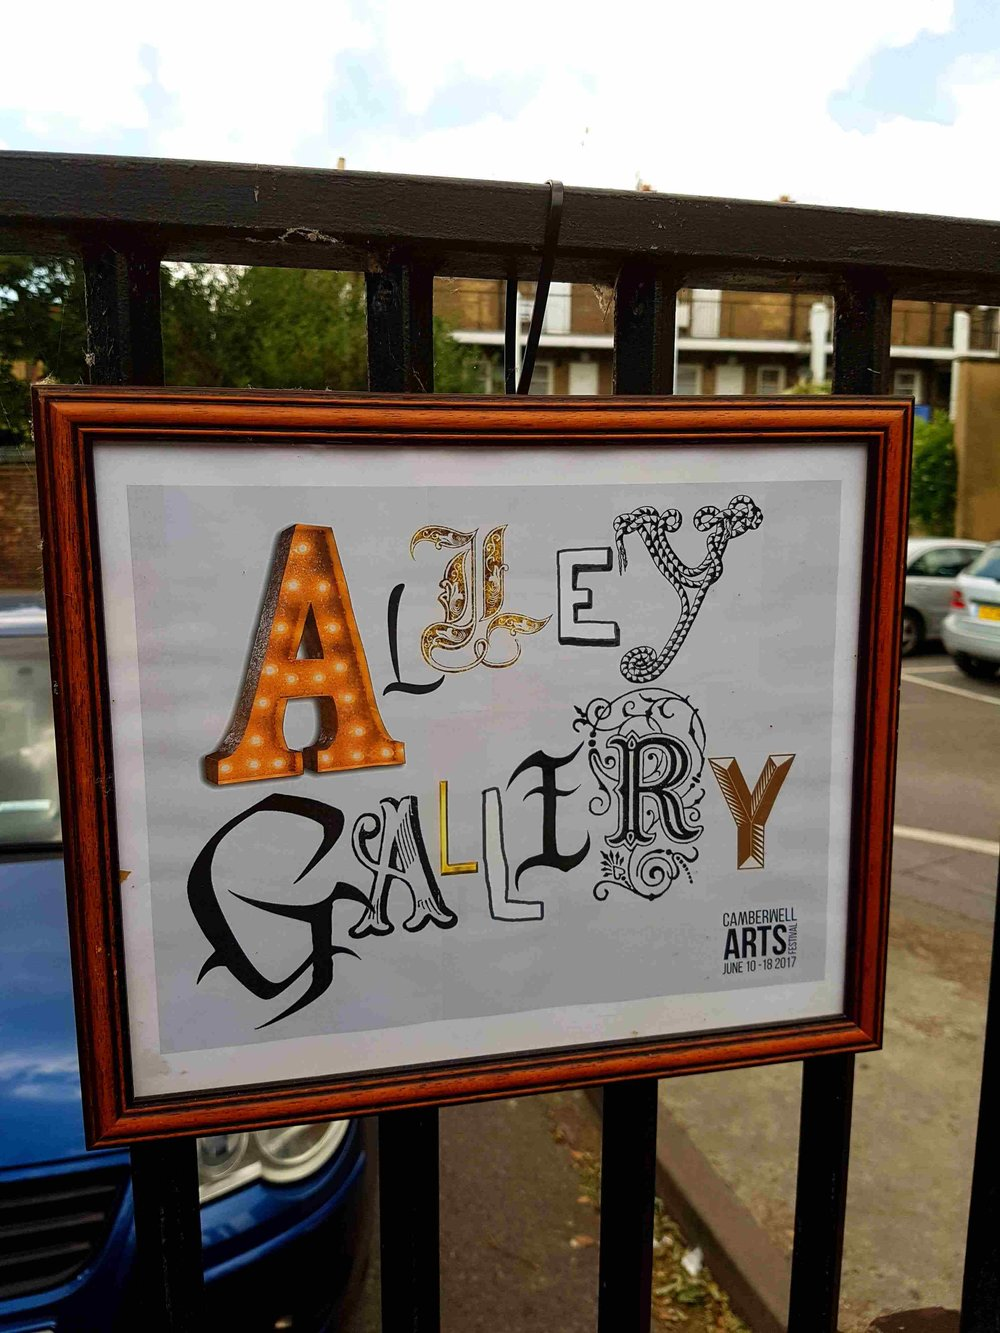 Alley Gallery is a temporary public Art Gallery on Daneville Road pedestrianised area (the railings beside Butterfly walk car park). We will showcase a cornucopia of artists who hae been involved with Camberwel Arts, the London Arts Board or who have a Camberwell connection.  Alley Gallery has been generously sponsored by Spot Property.